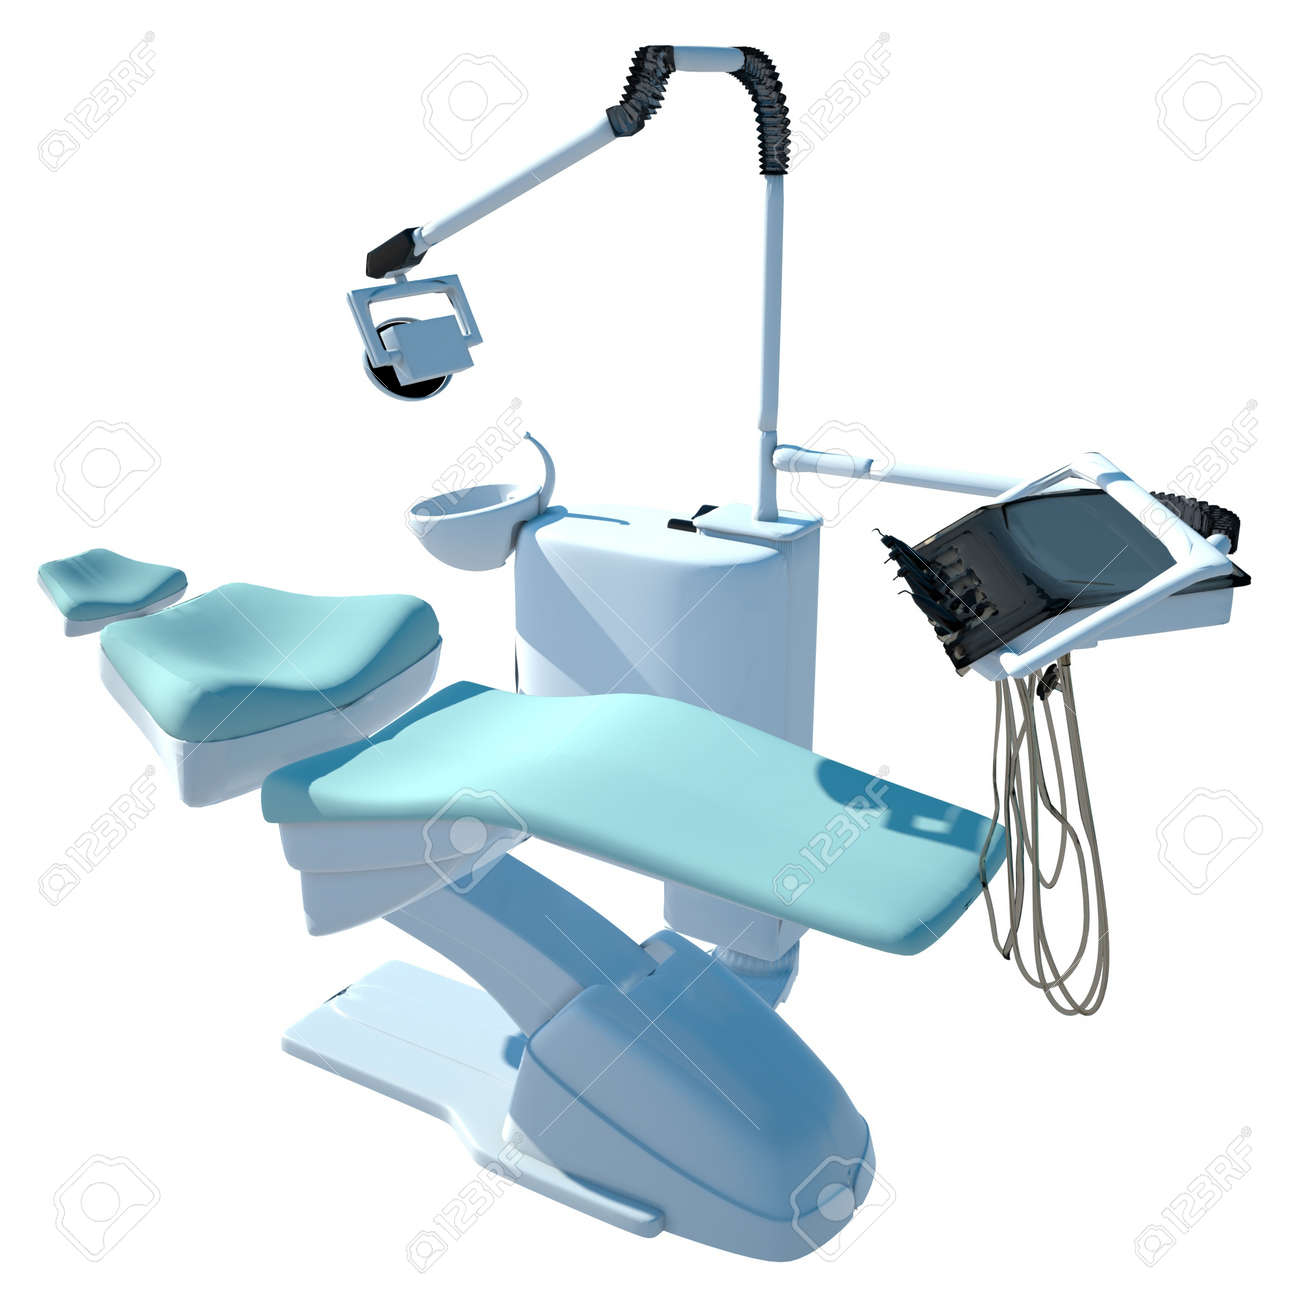 Dental Chair Stock Photo, Picture And Royalty Free Image. Image ...